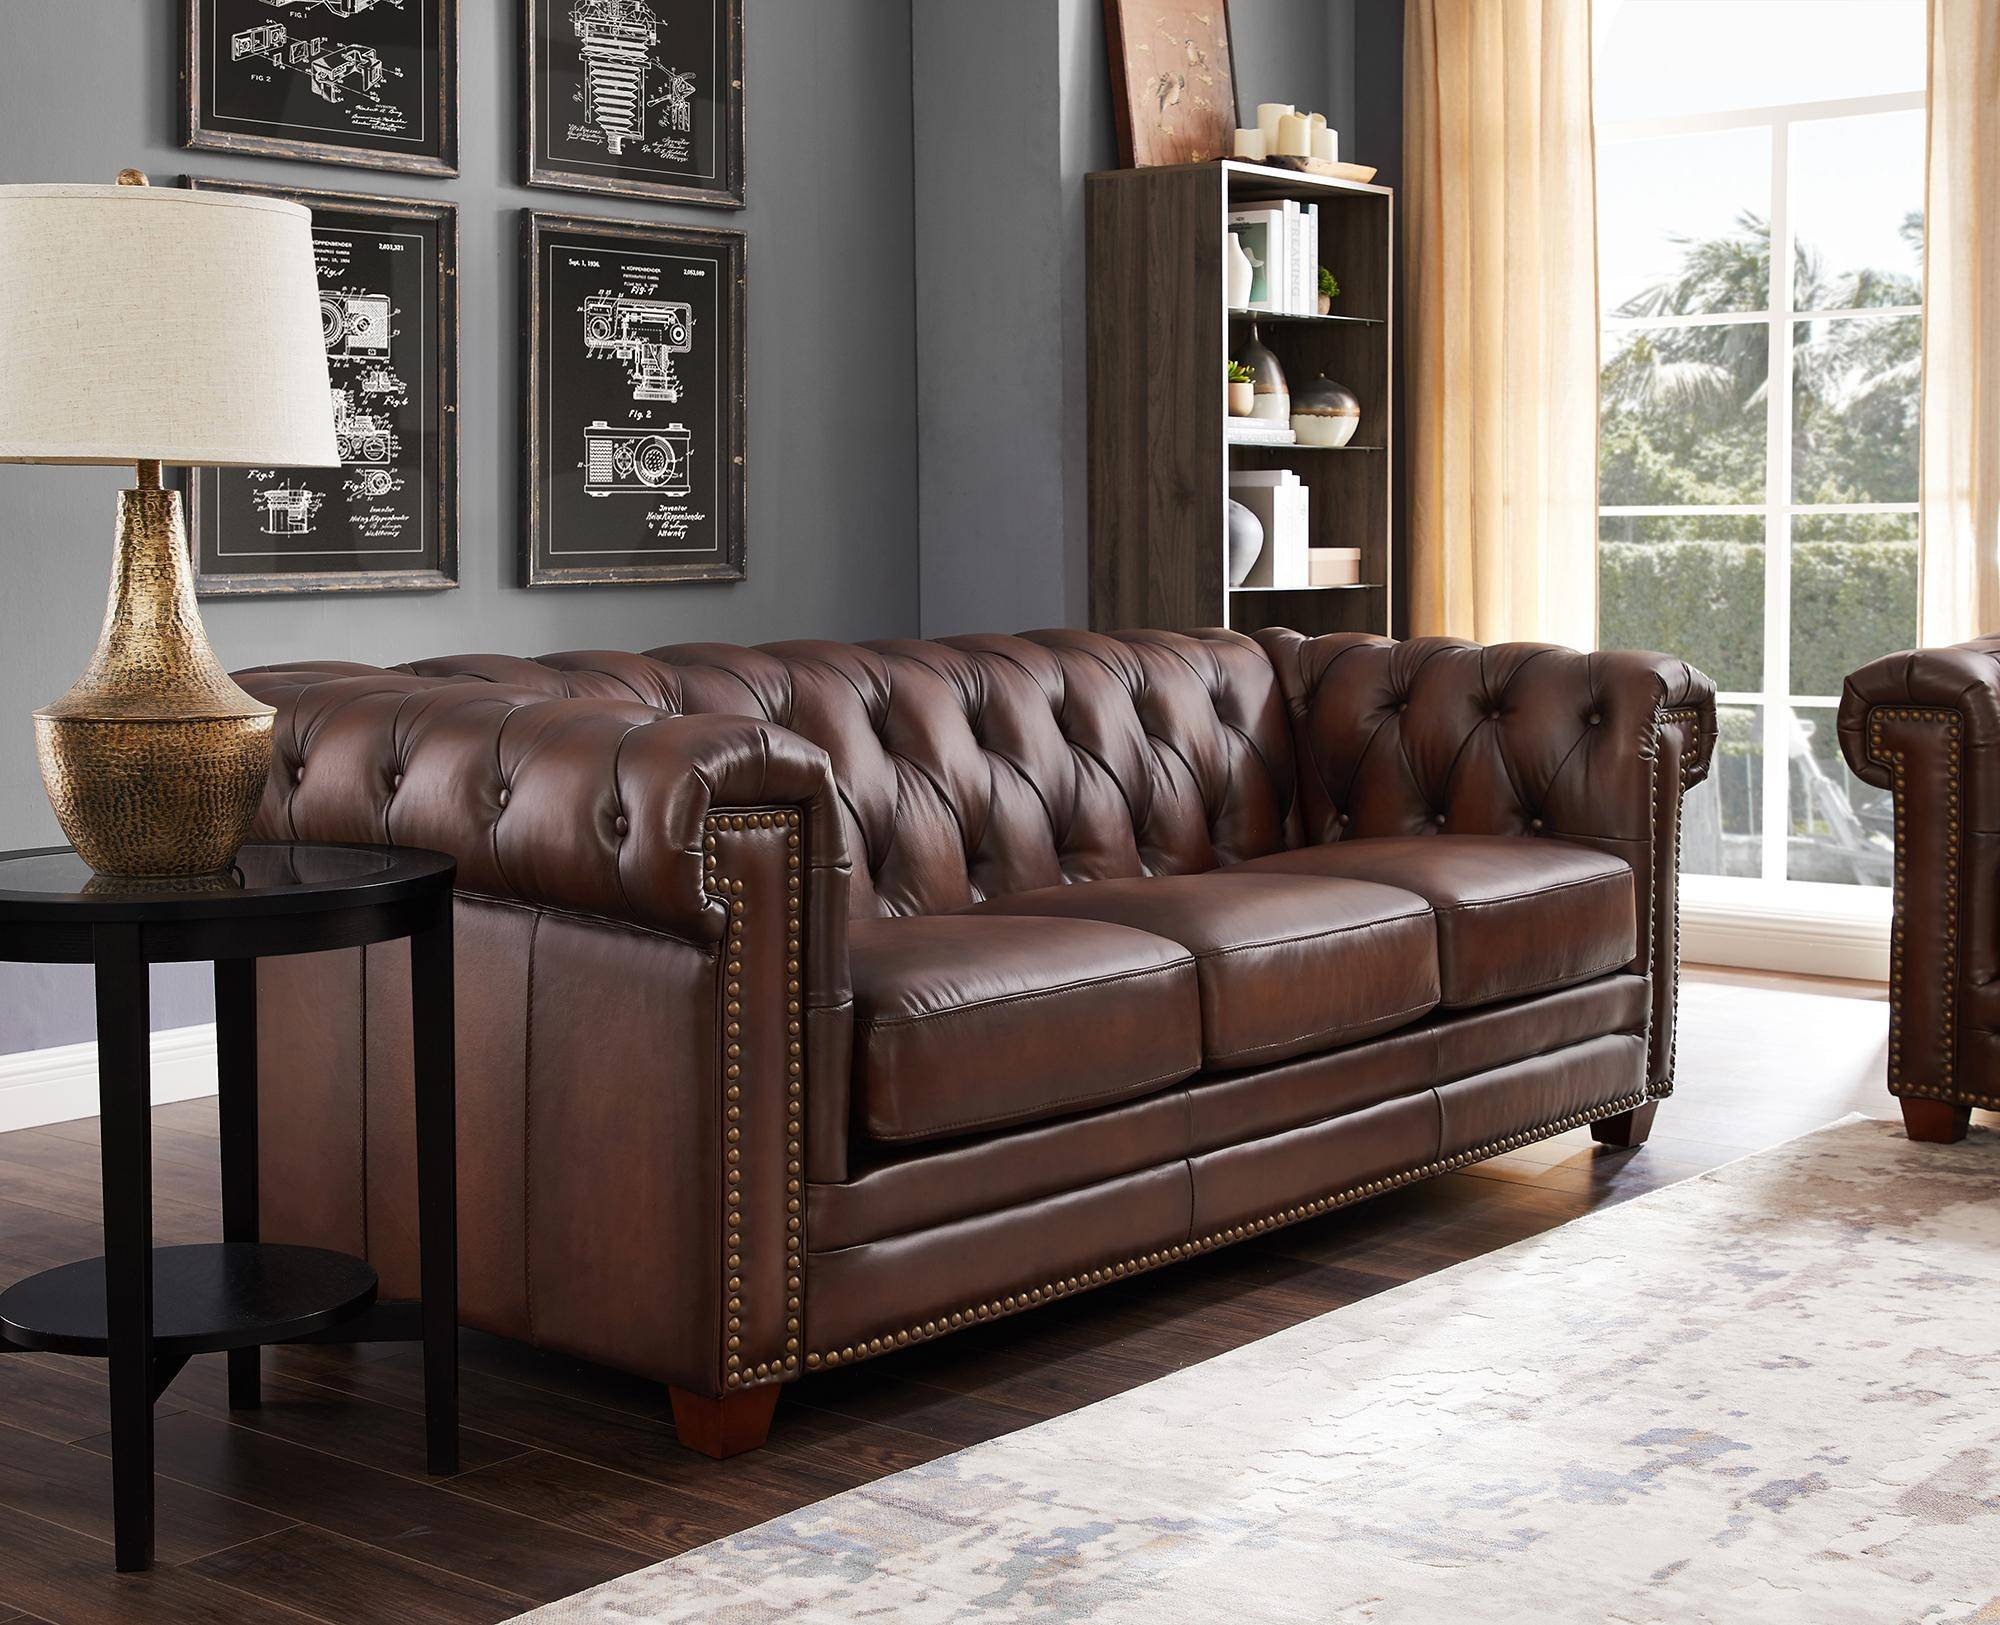 Dark Brown STANWOOD Genuine Leather Sofa HYDELINE ...